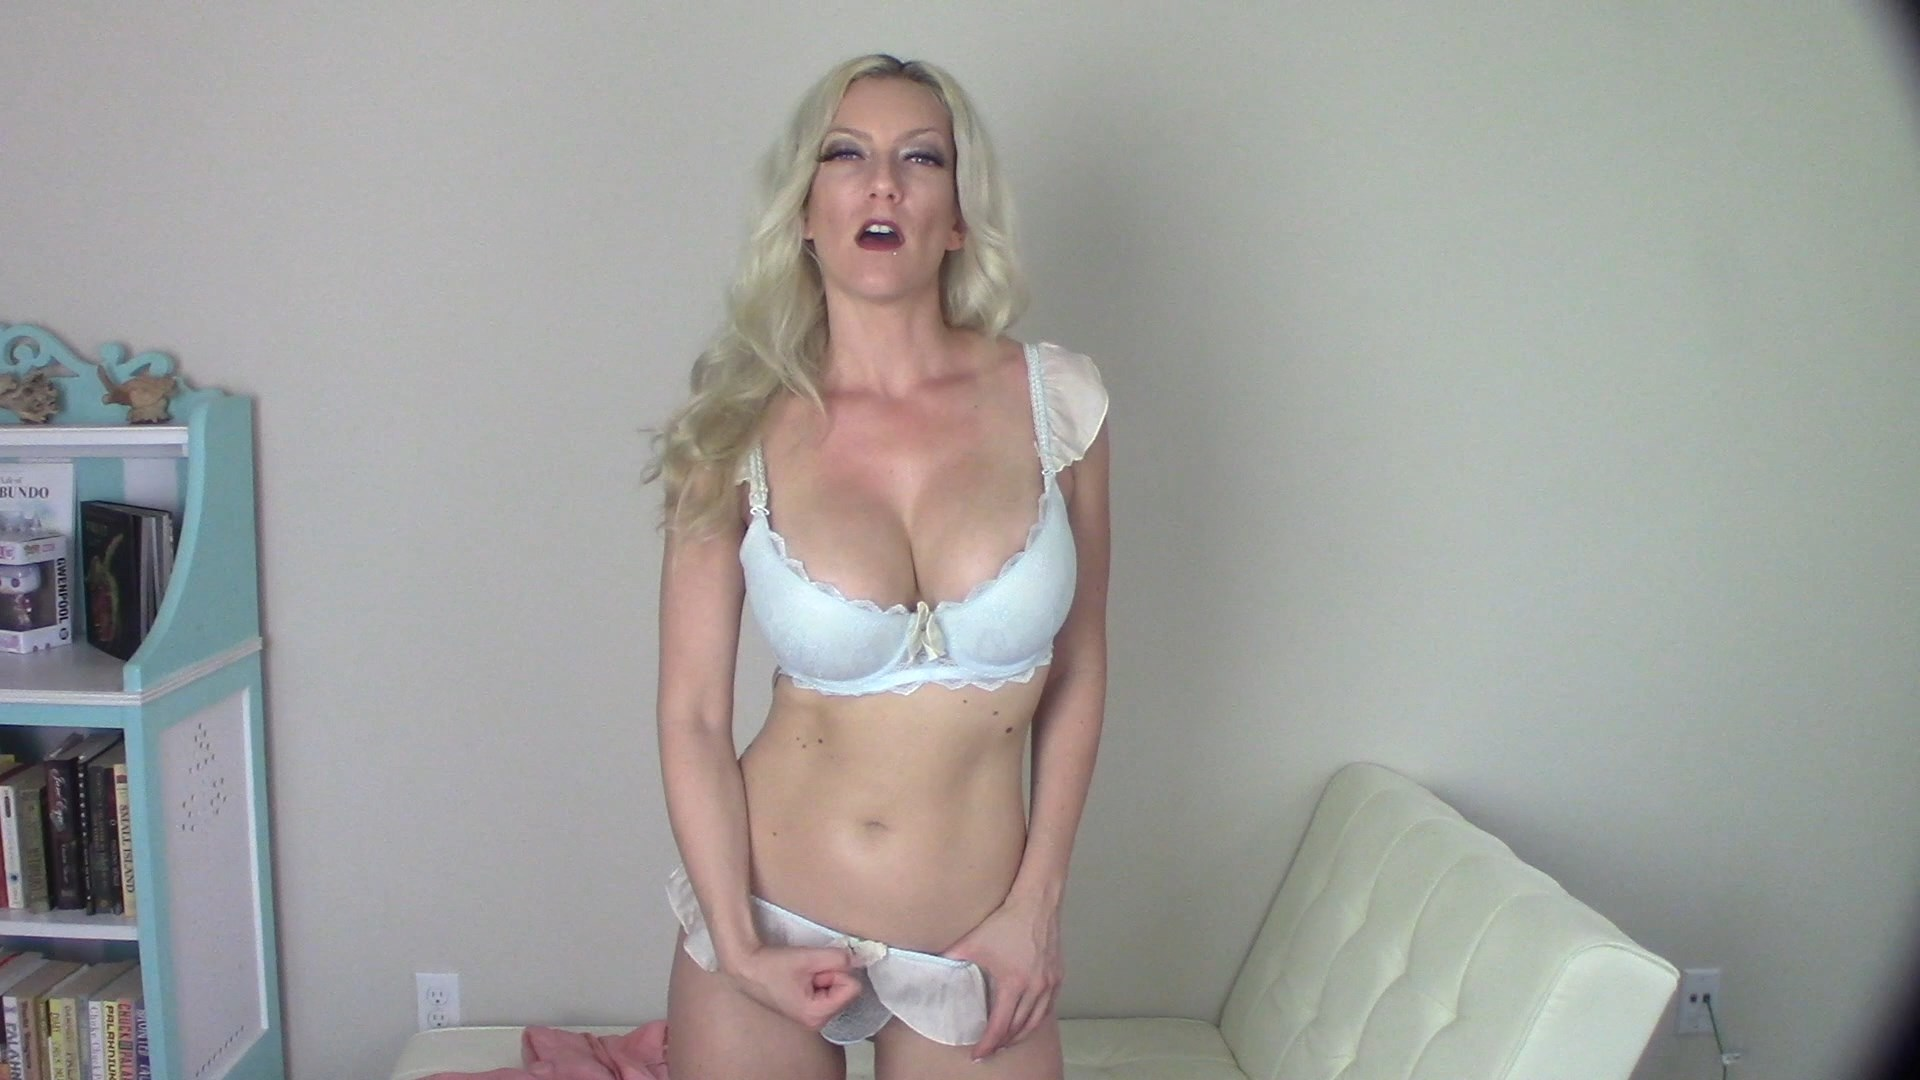 Goddess Gwen - Eat your cum for step-mommy